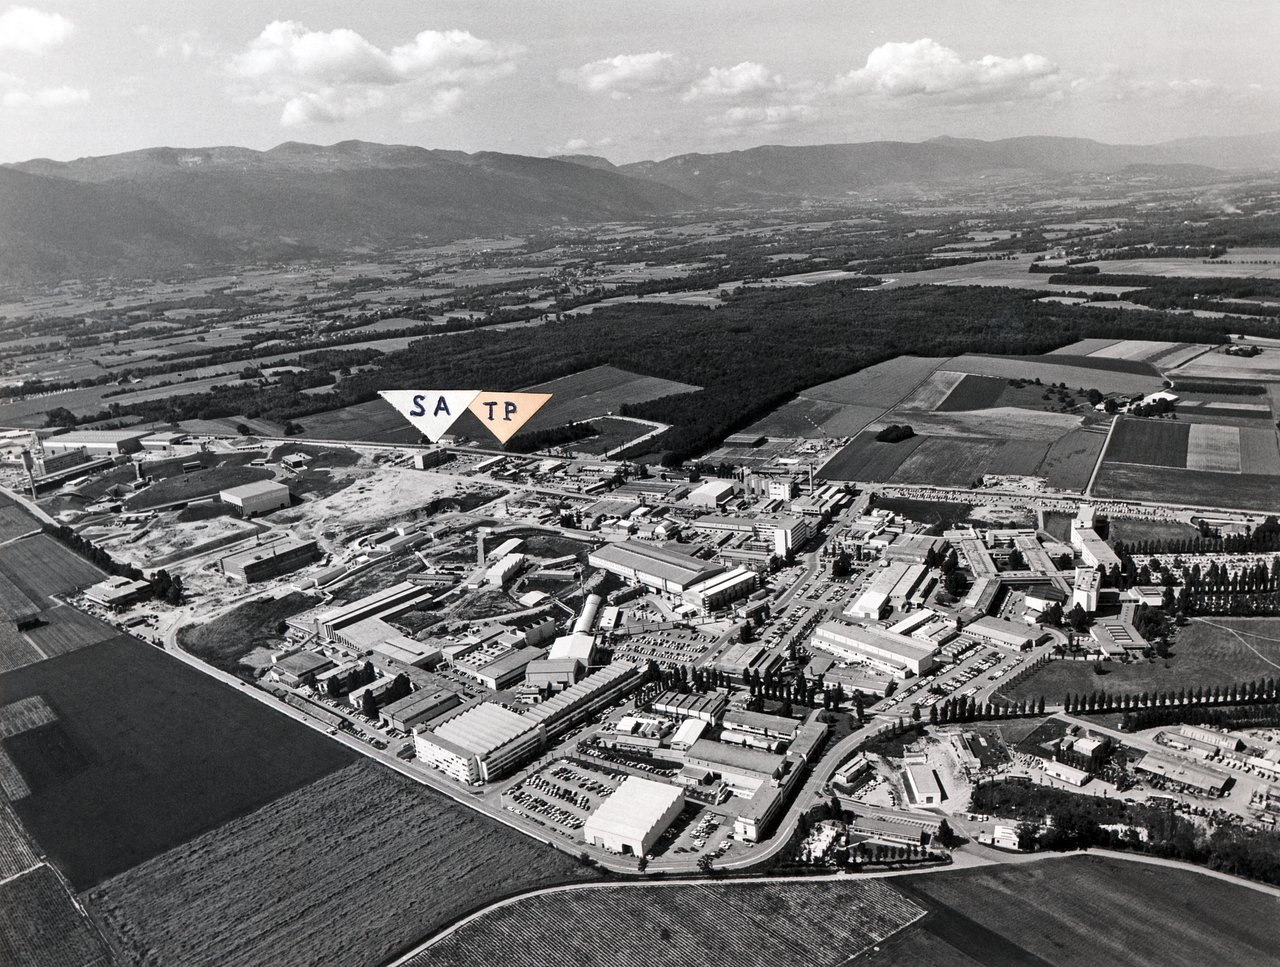 The CERN Complex near Geneva